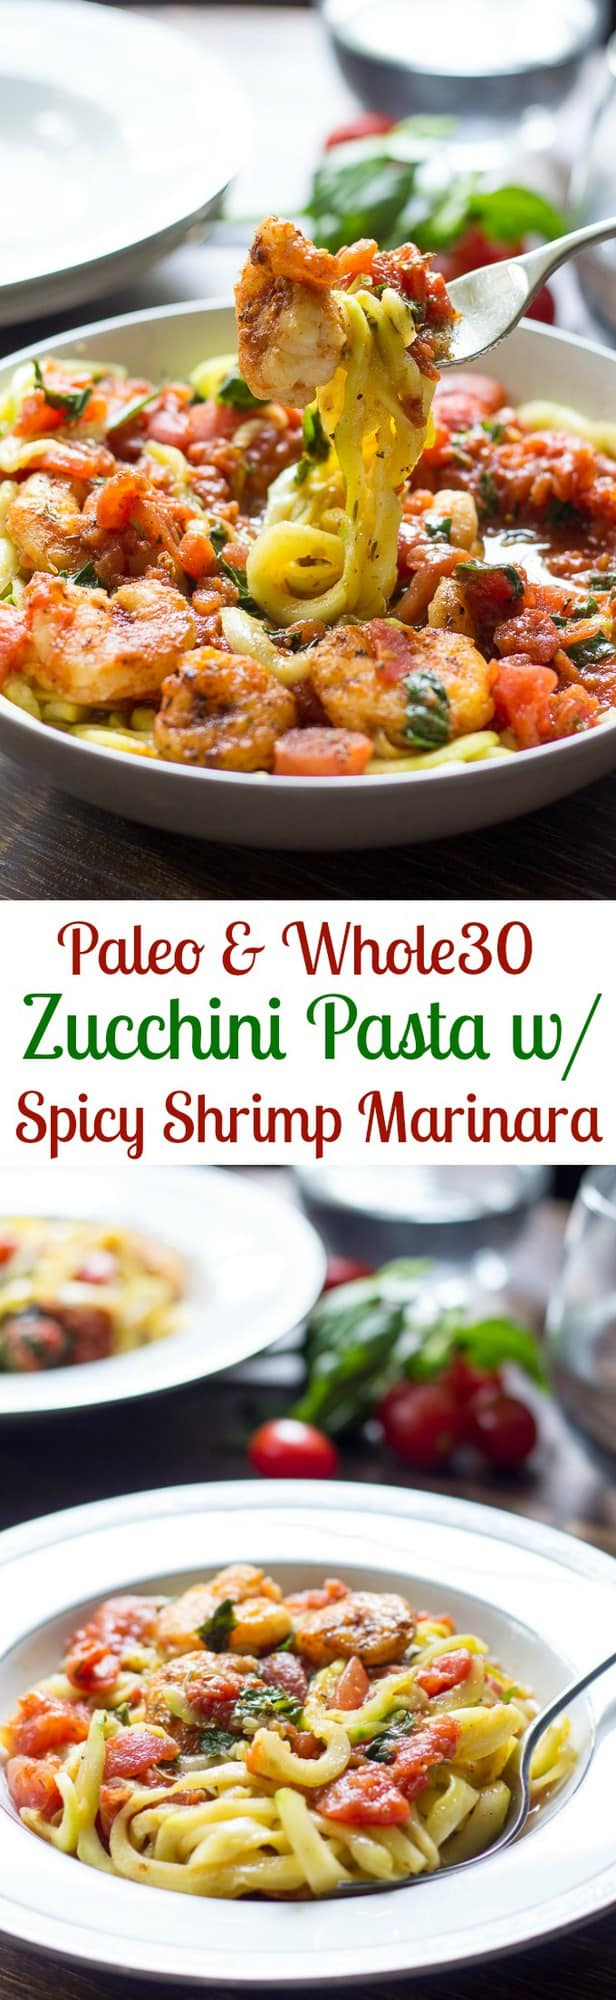 Paleo zucchini pasta with spicy shrimp marinara that's Whole30 friendly, gluten free, dairy free, great healthy weeknight dinner!